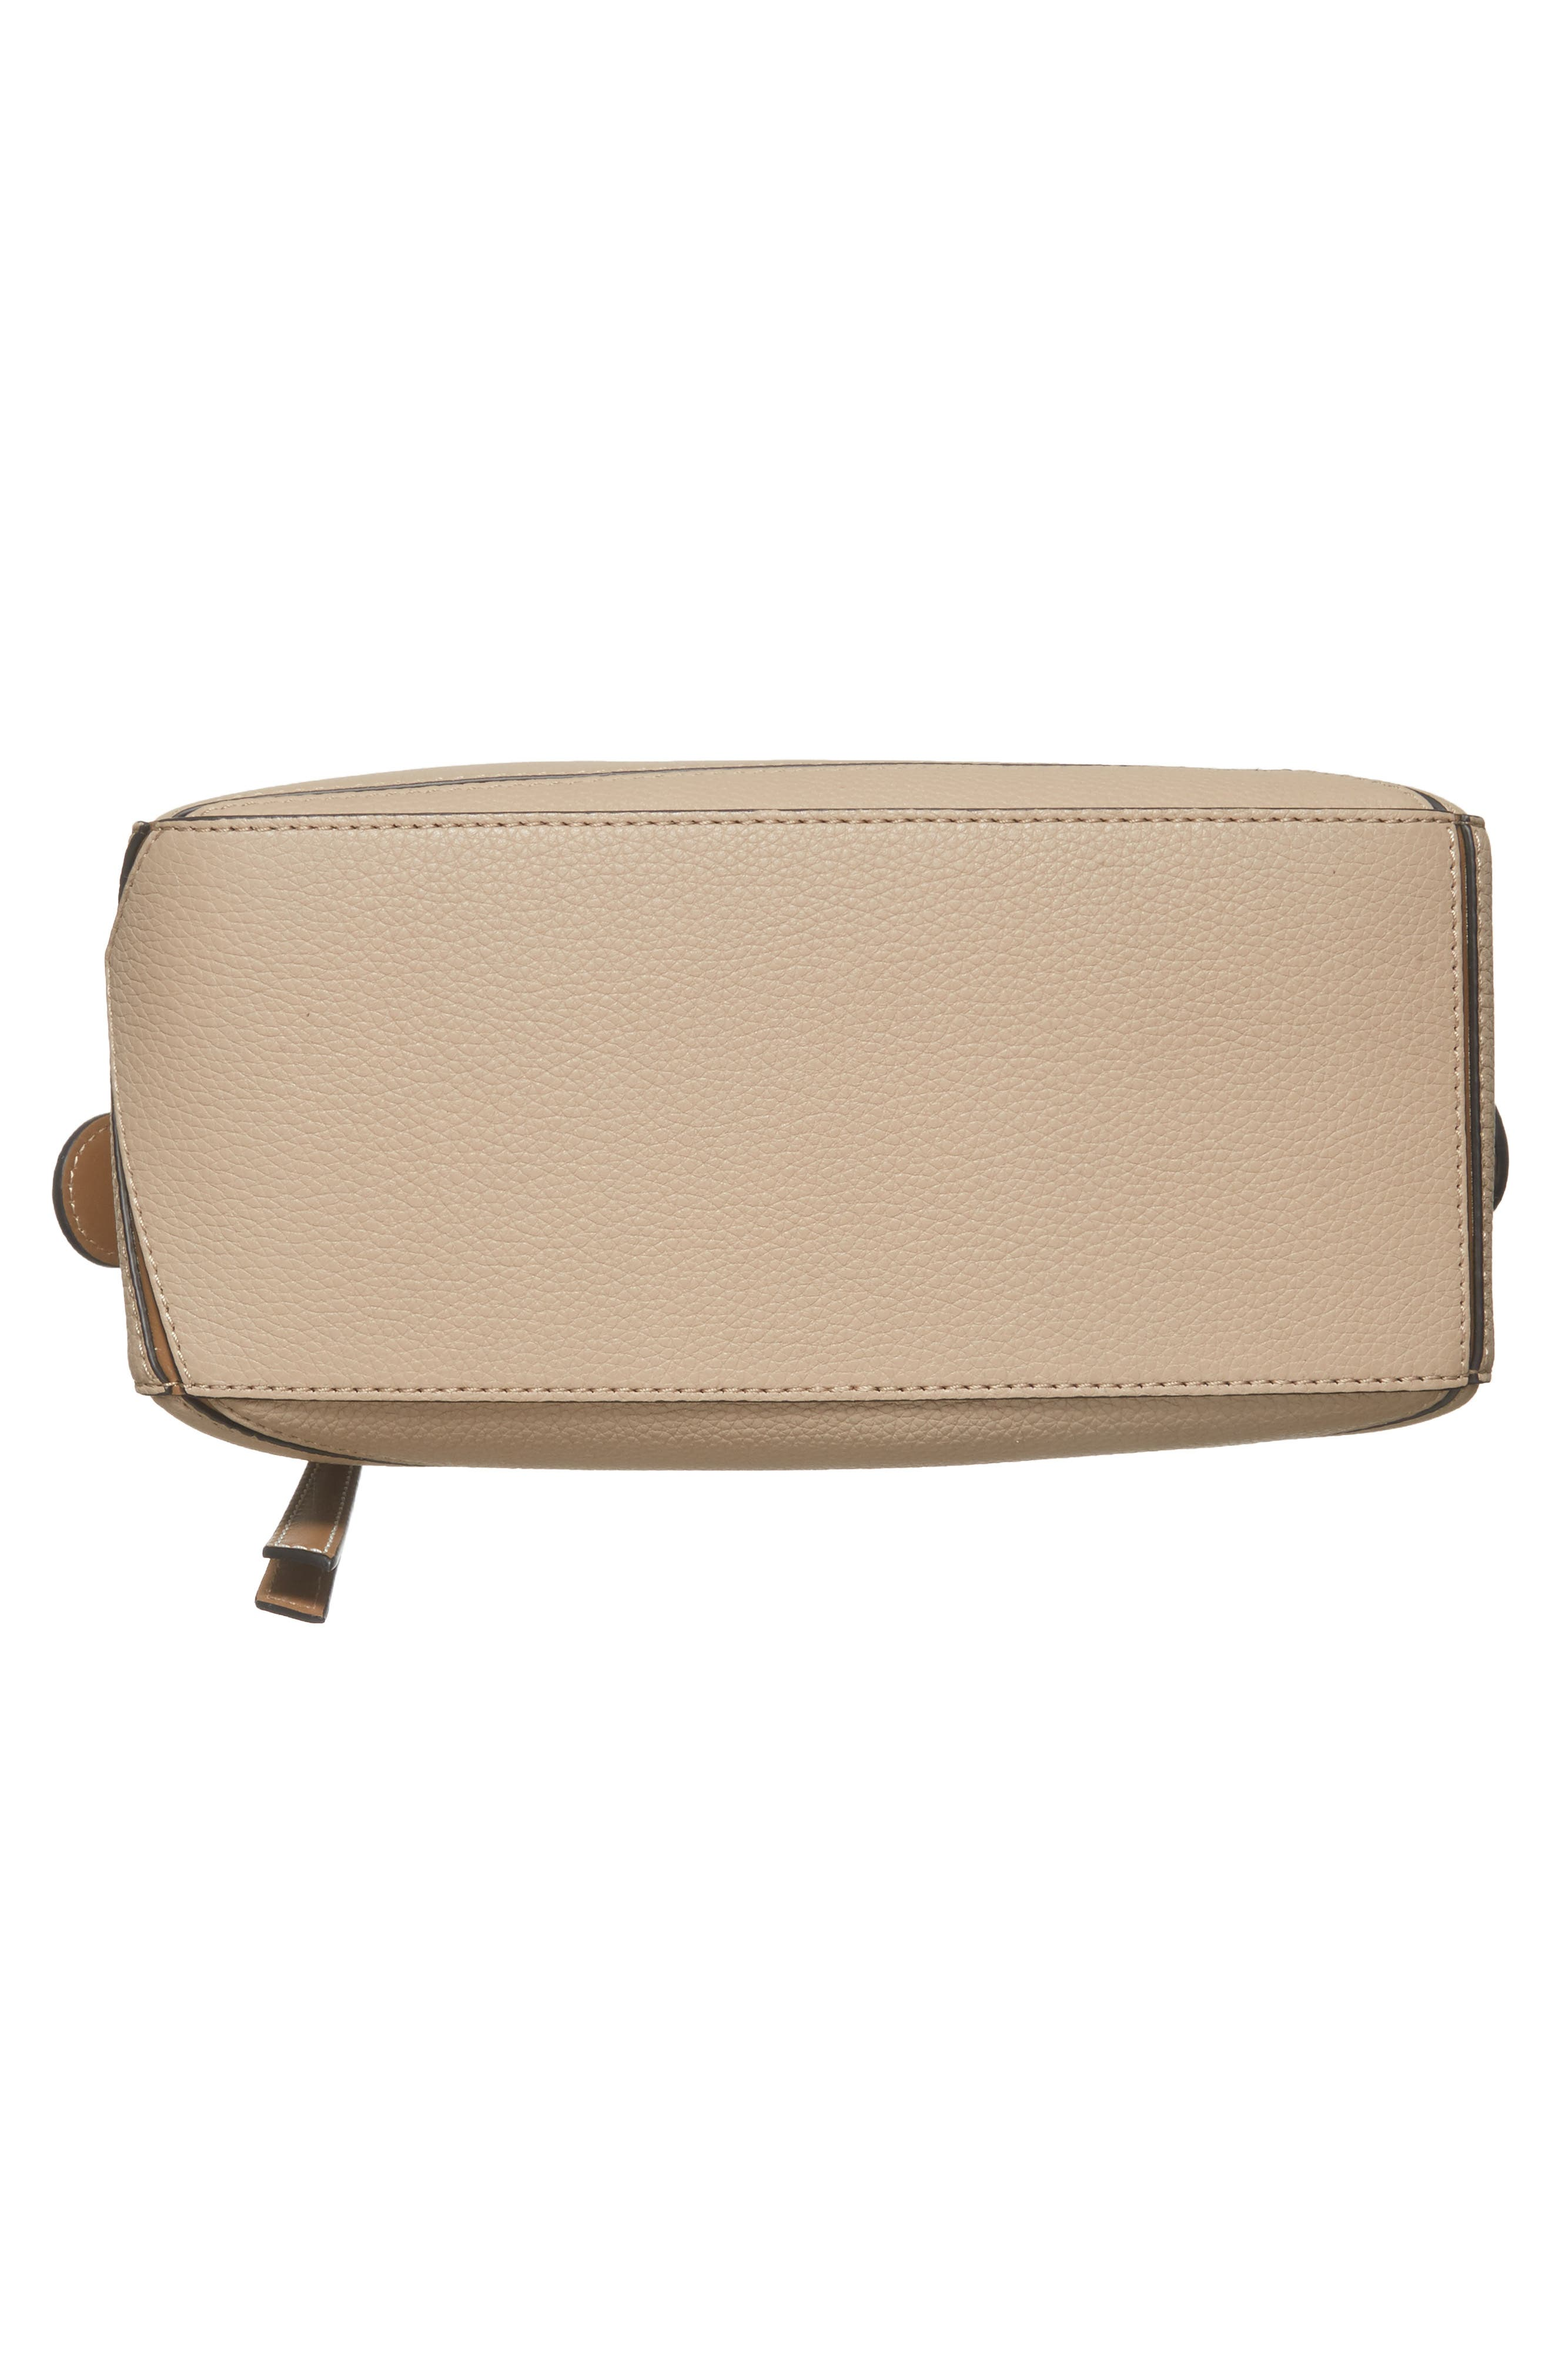 Small Puzzle Leather Bag,                             Alternate thumbnail 6, color,                             Sand/ Mink